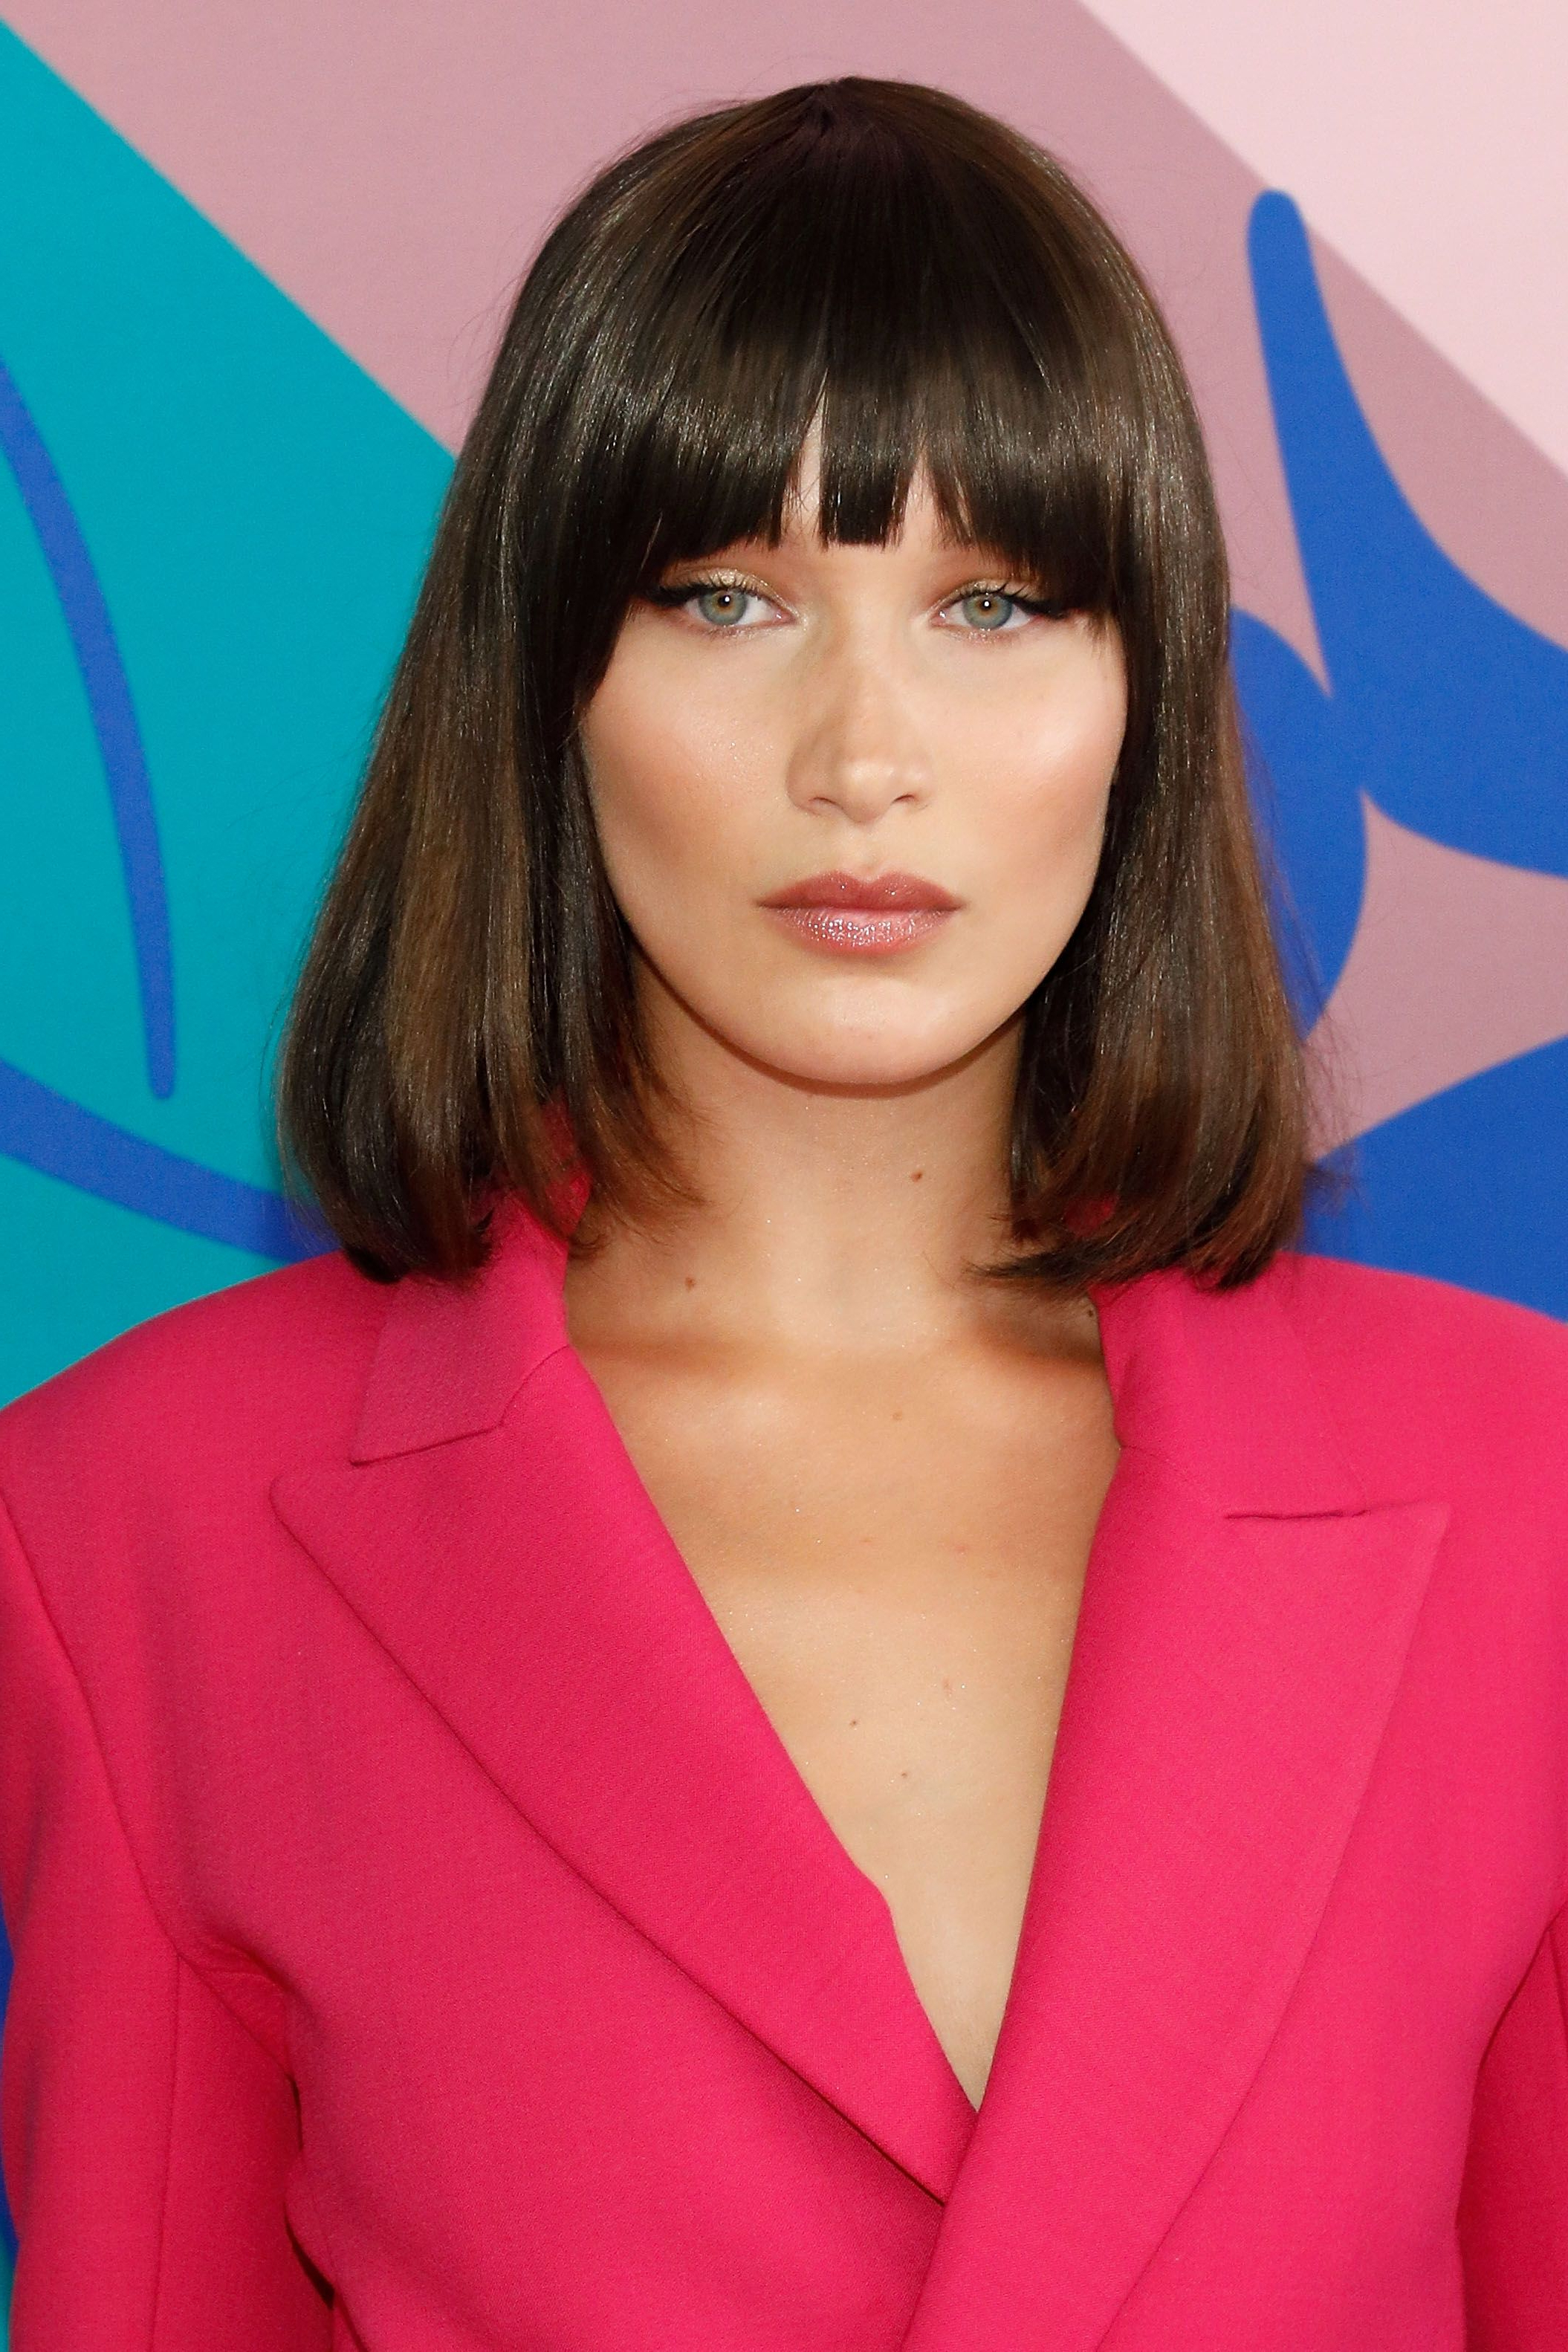 Well Known Low Key Curtain Bangs Hairstyles Intended For 16 Hairstyles With Bangs – Bangs For Face Shape (View 15 of 20)